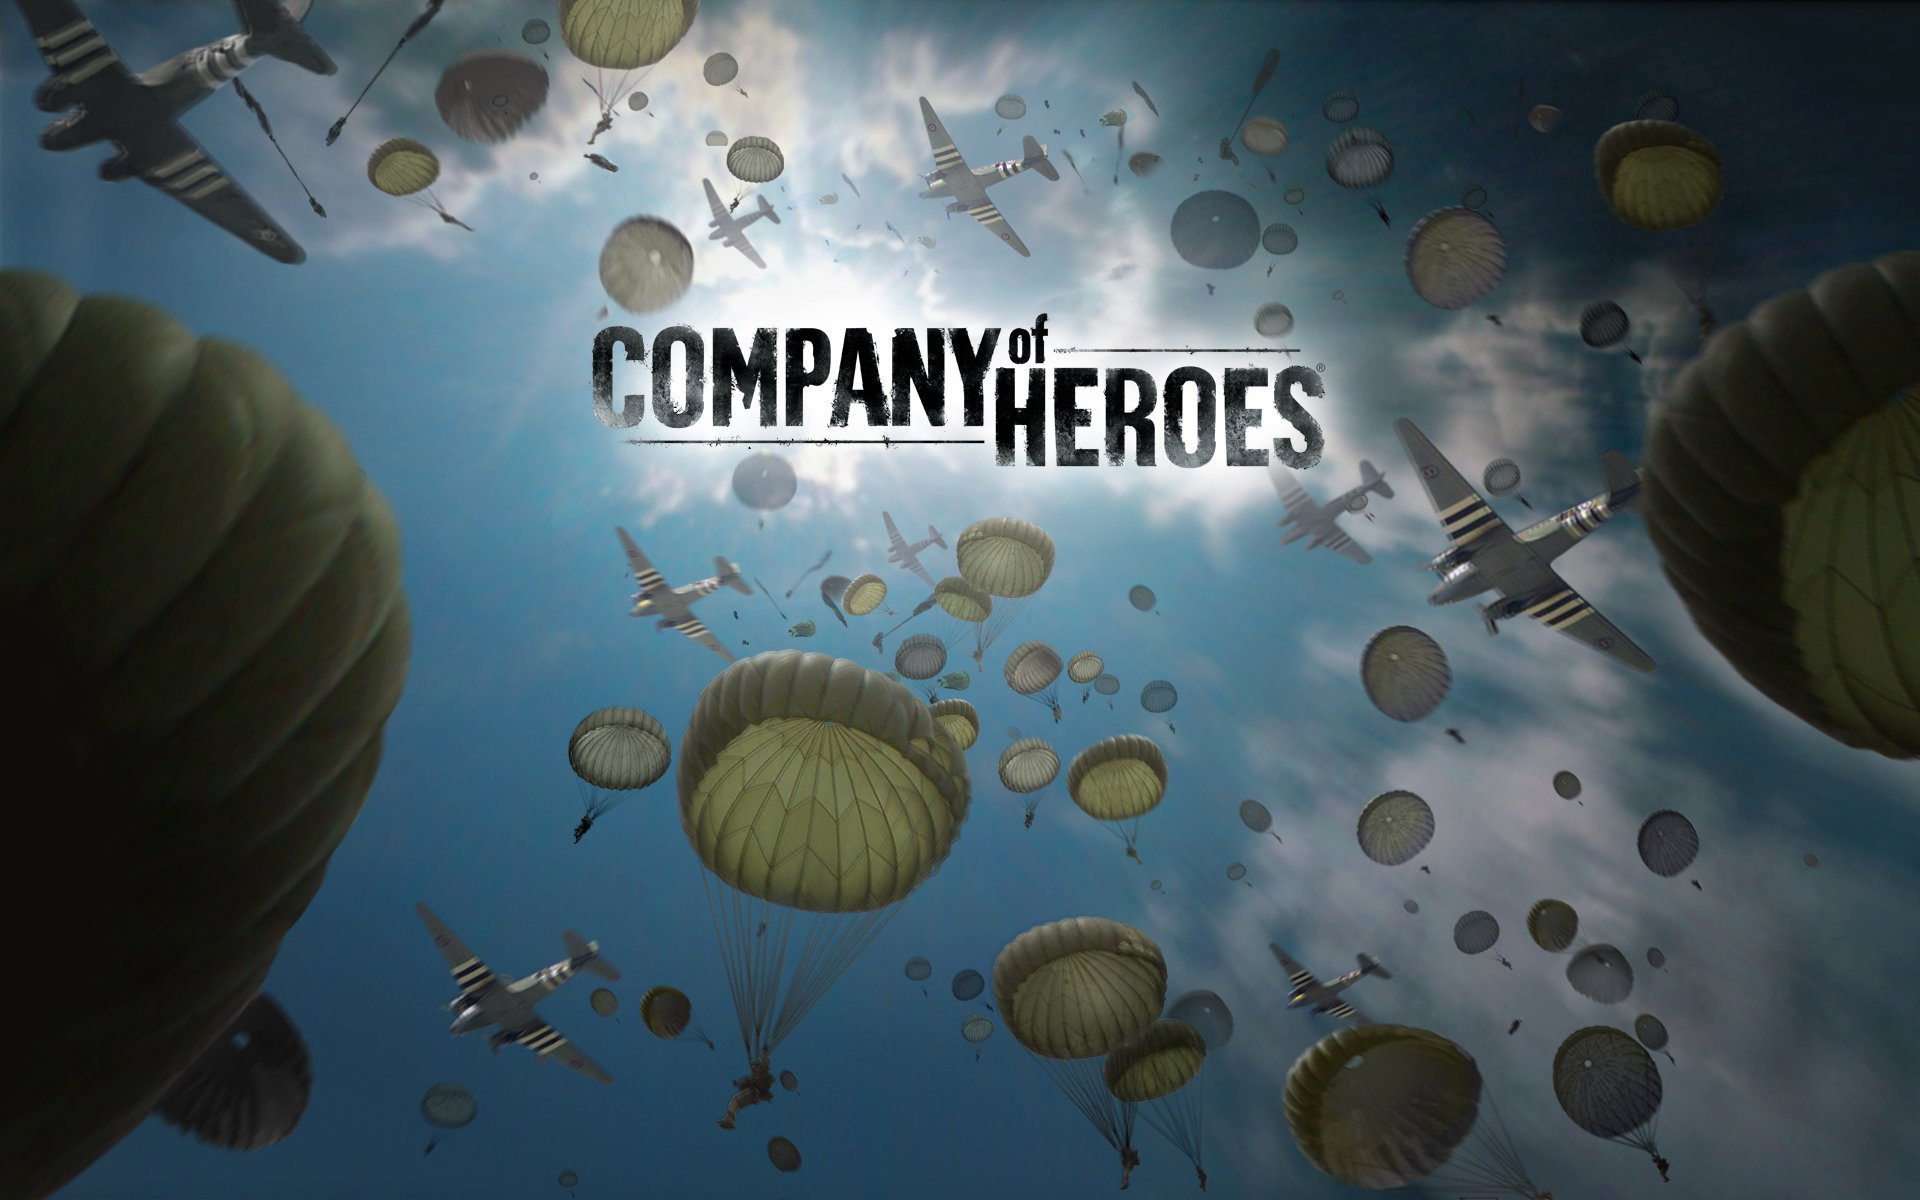 Company of Heroes 993.32 Kb